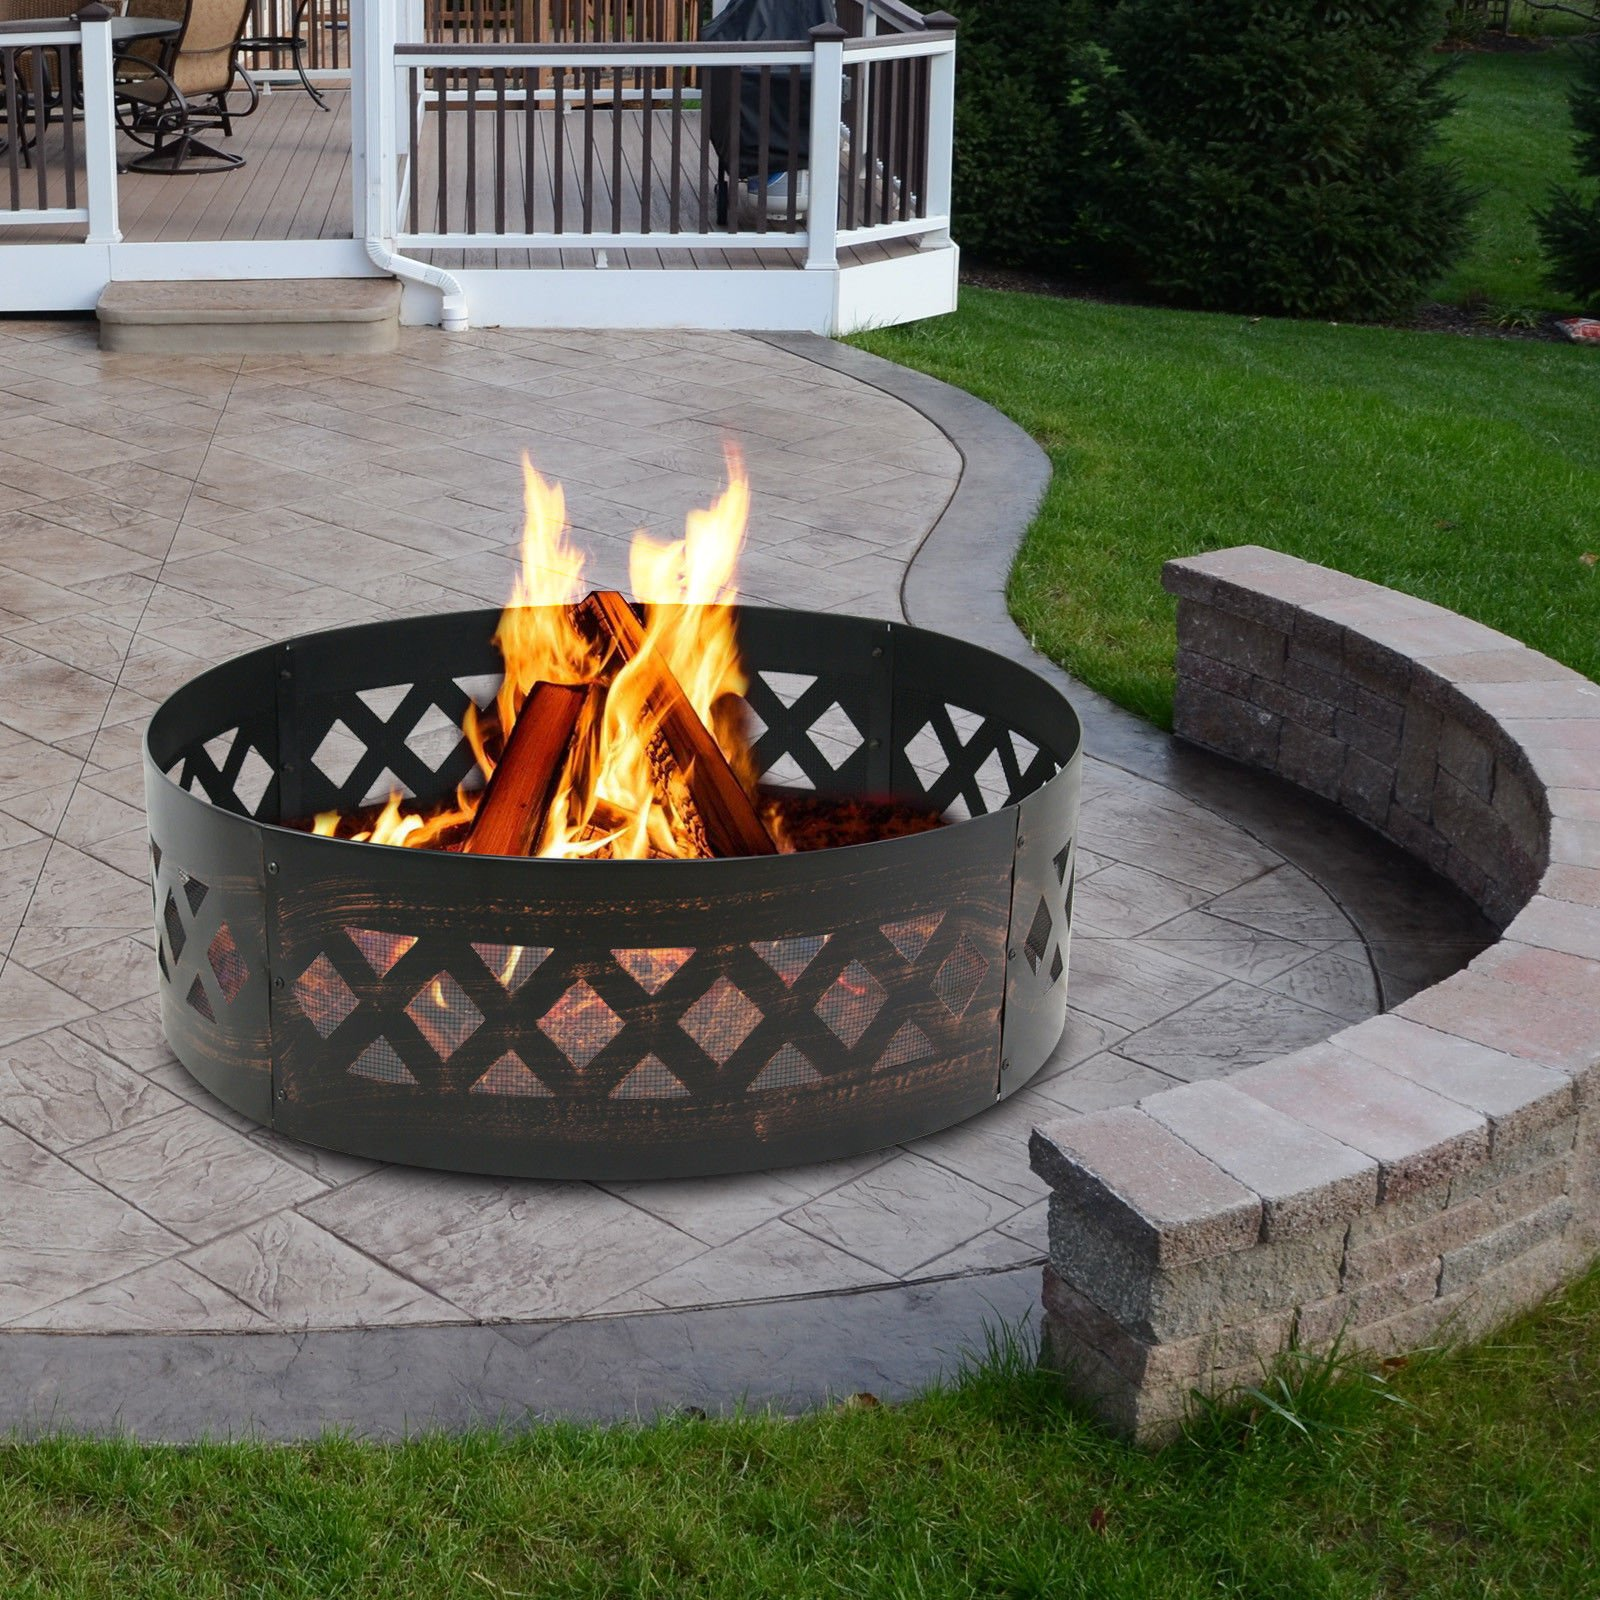 Nice1159 37'' Campfire Ring-Steel Outdoor Fireplaces, Heavy Duty In-Ground 12''(H) Warm Cold Night! Portable (Only 5 pcs Left) by Nice1159